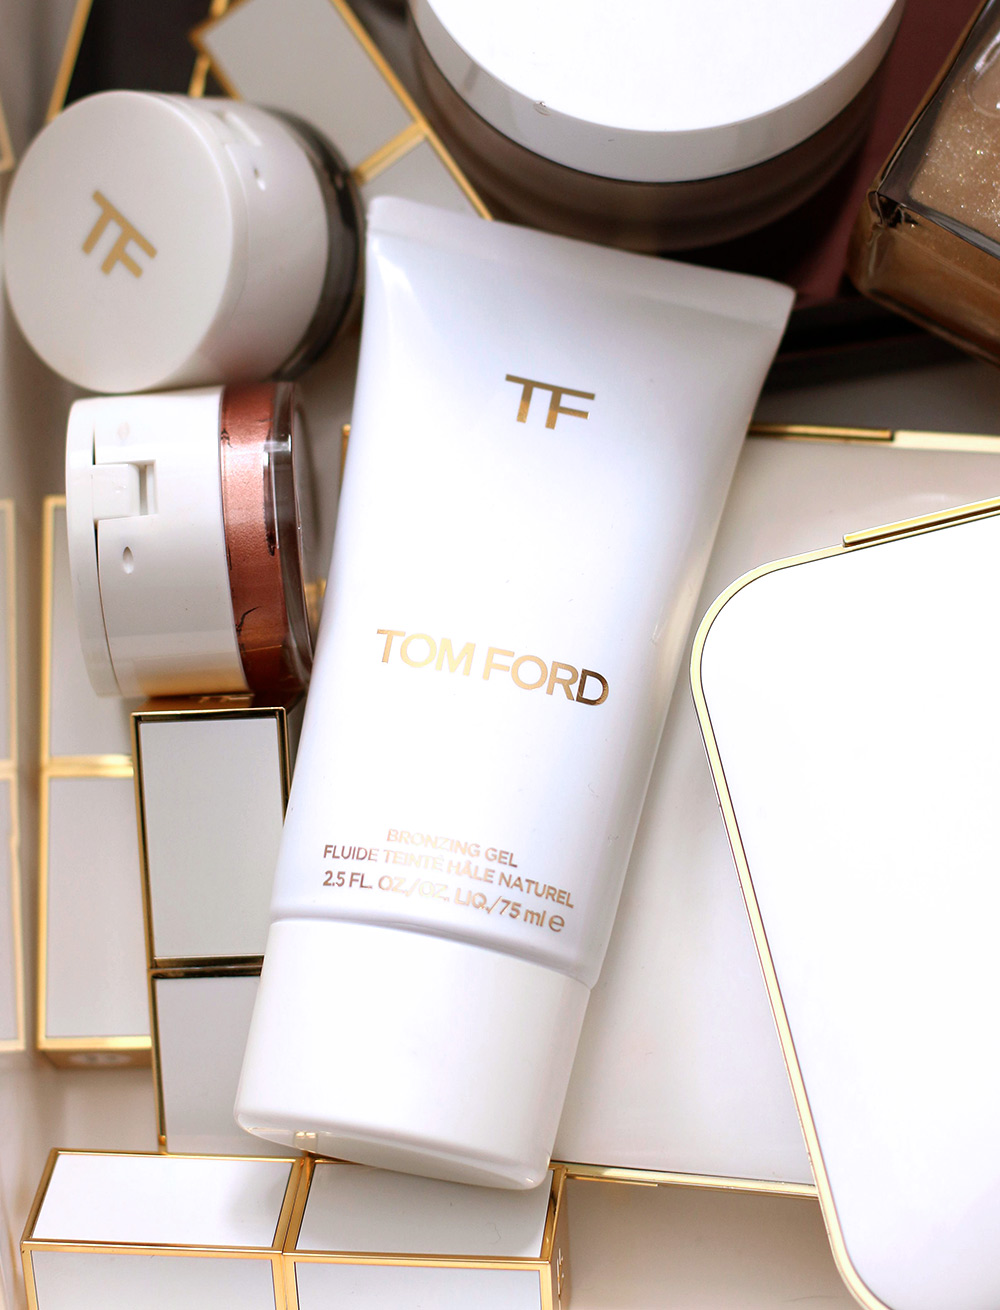 tom ford 2017 summer soleil collection bronzing gel. Black Bedroom Furniture Sets. Home Design Ideas